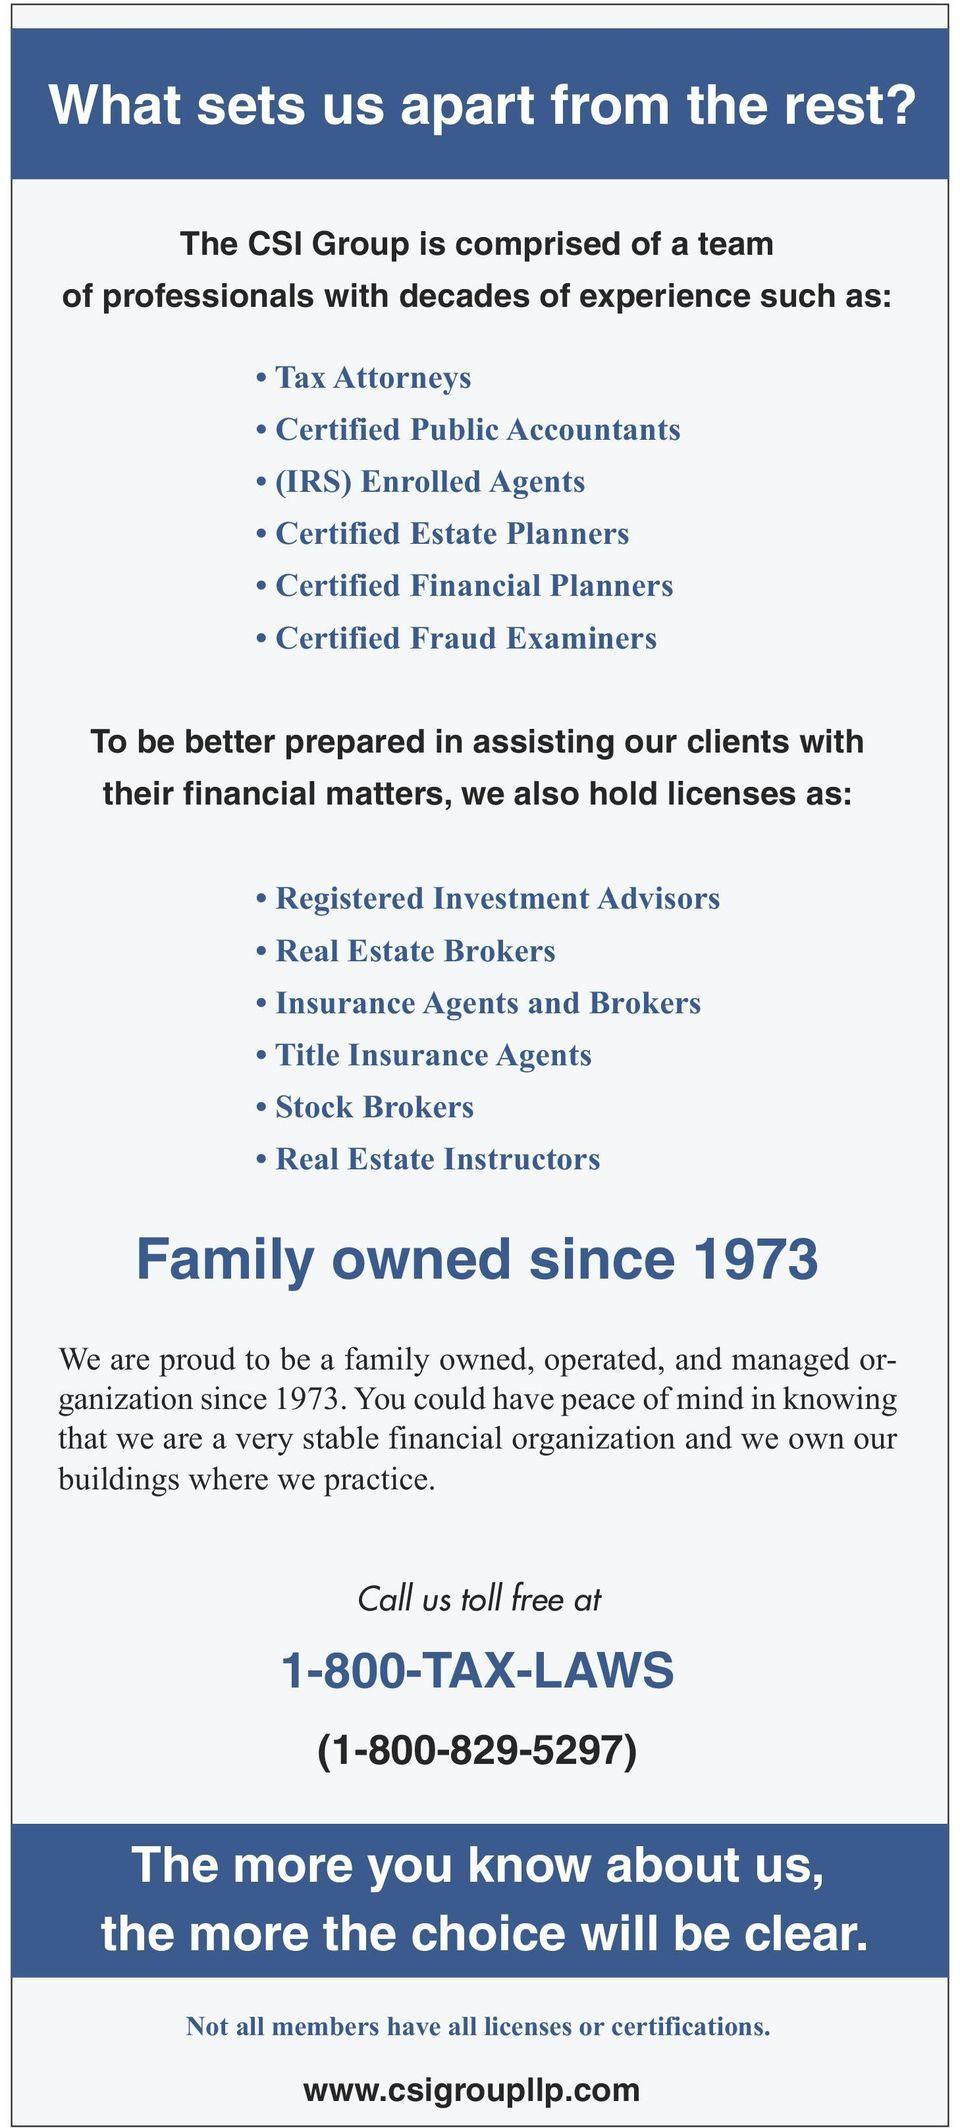 Financial Planners Certified Fraud Examiners To be better prepared in assisting our clients with their financial matters, we also hold licenses as: Registered Investment Advisors Real Estate Brokers